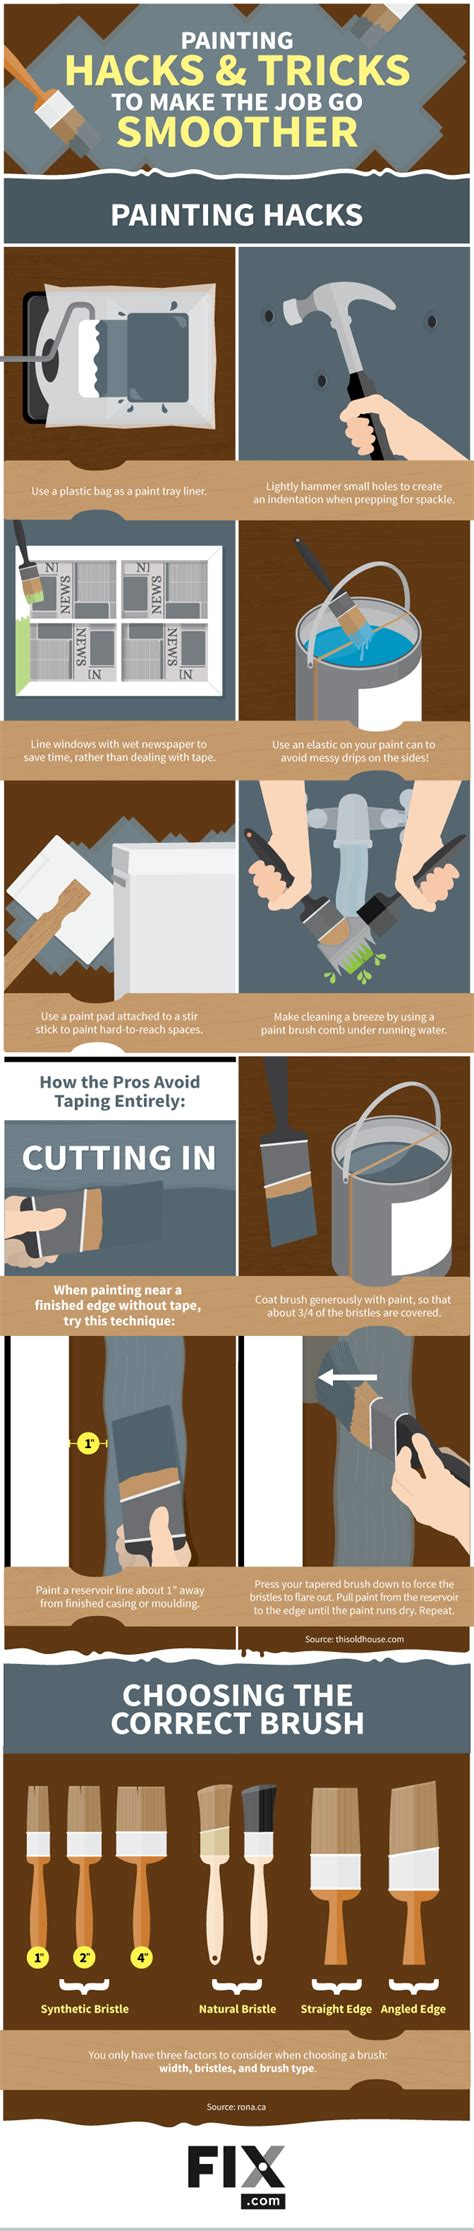 hack and paint infographic painting hacks to make the job go smoother